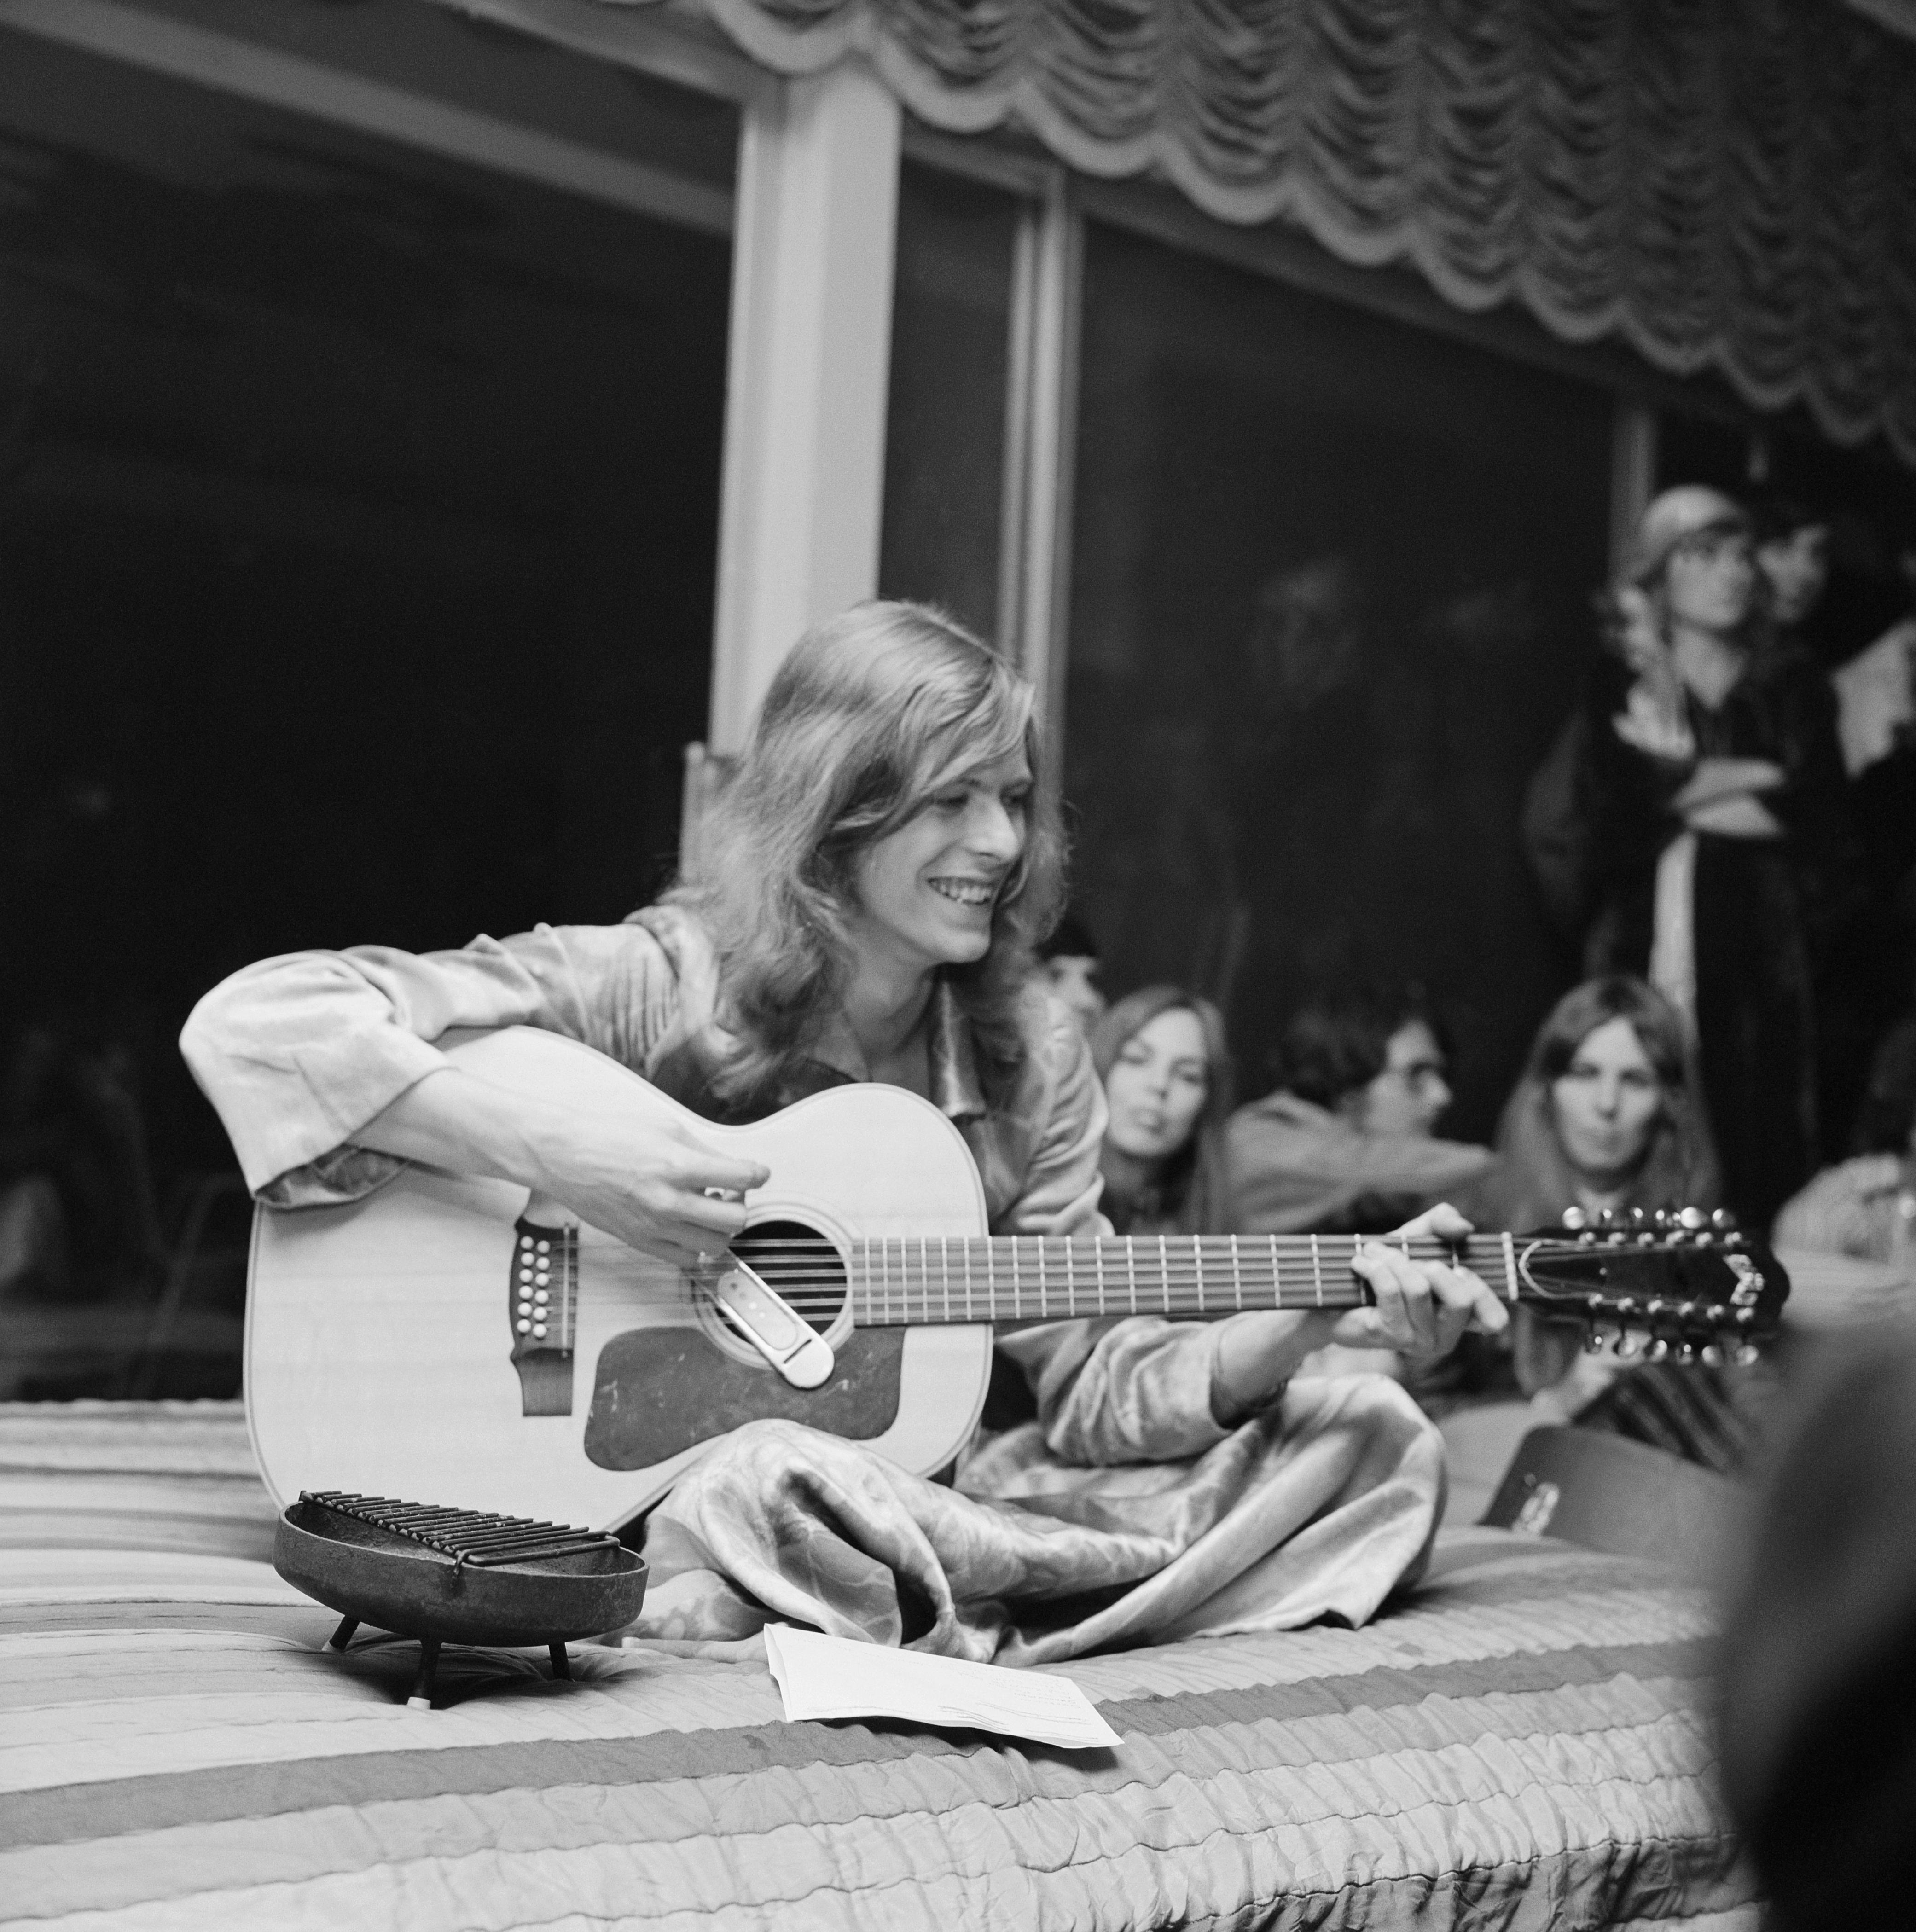 LOS ANGELES - JANUARY 1971:  A pre-glam David Bowie jams at a party thrown by publicist and future nightclub impresario and D